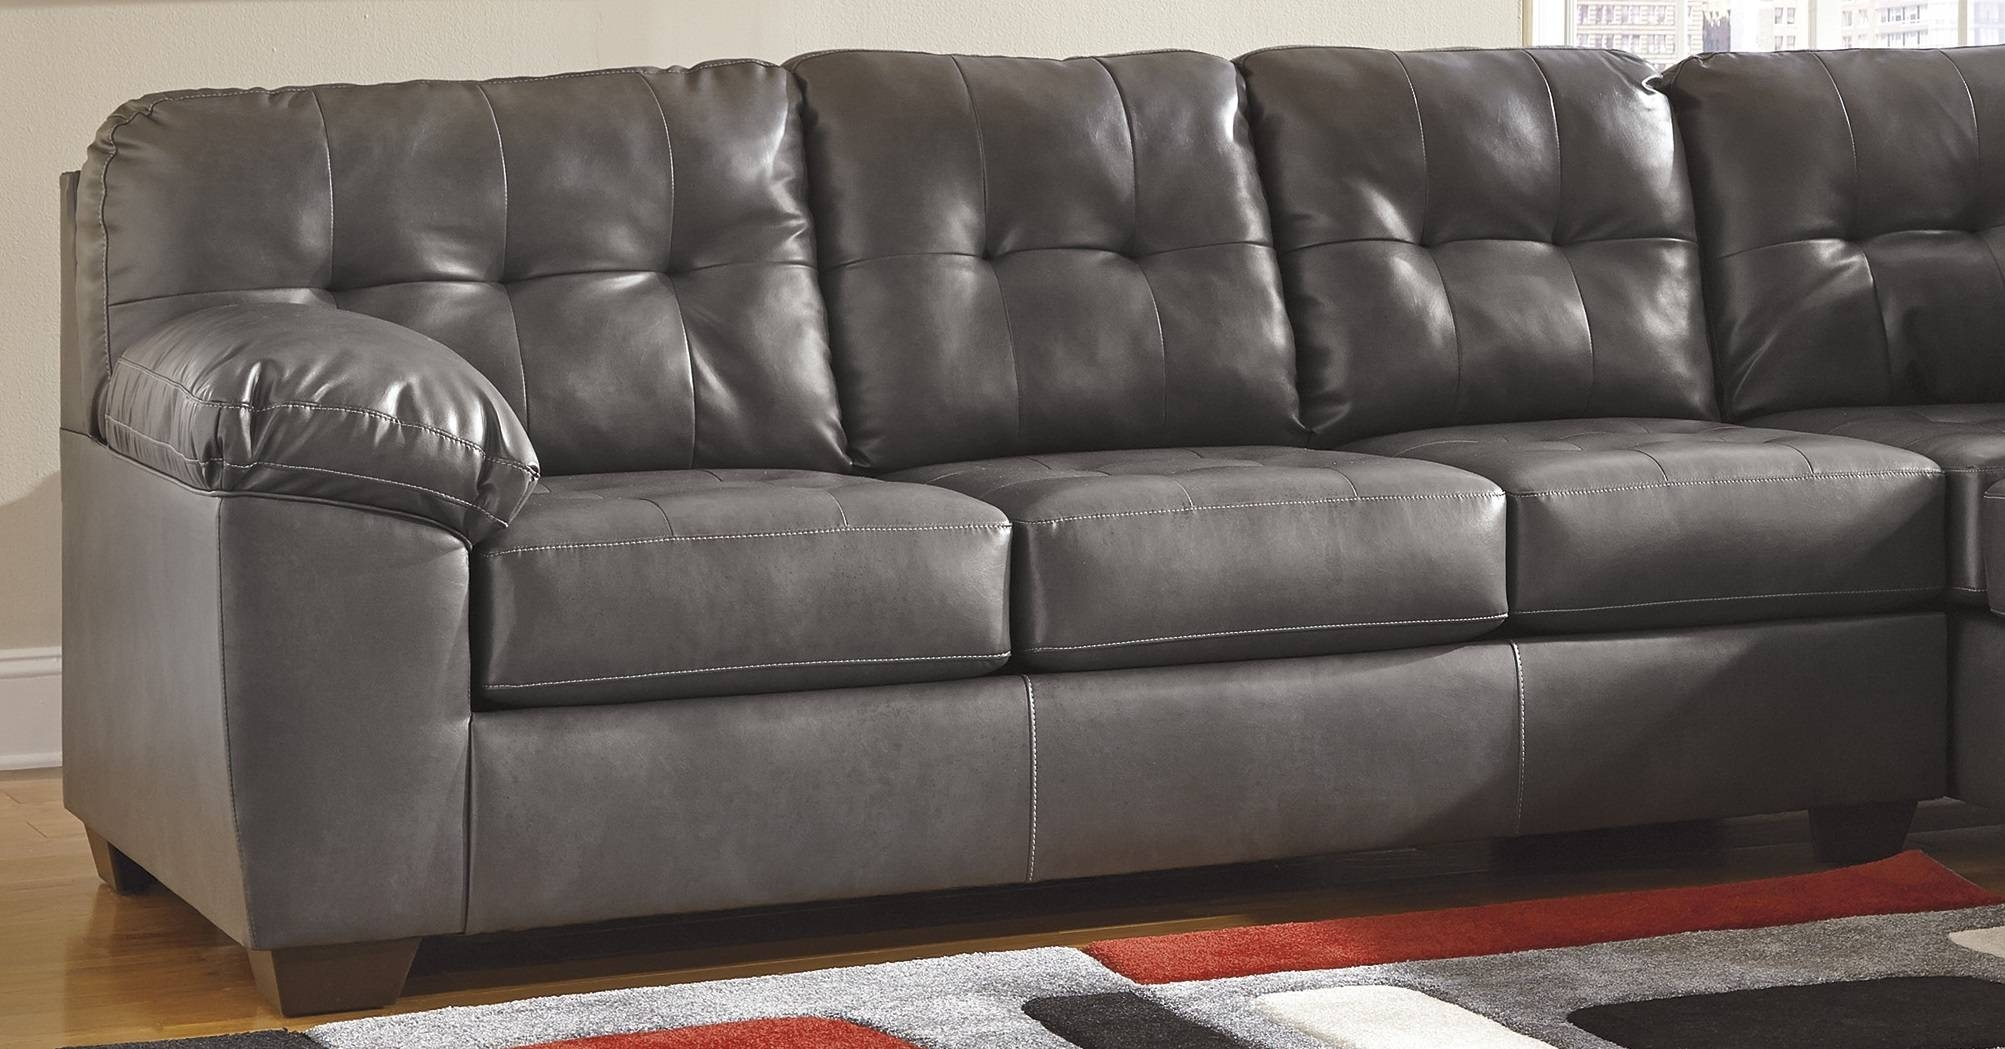 Gray Leather Sofa – Helpformycredit throughout Charcoal Grey Leather Sofas (Image 10 of 15)